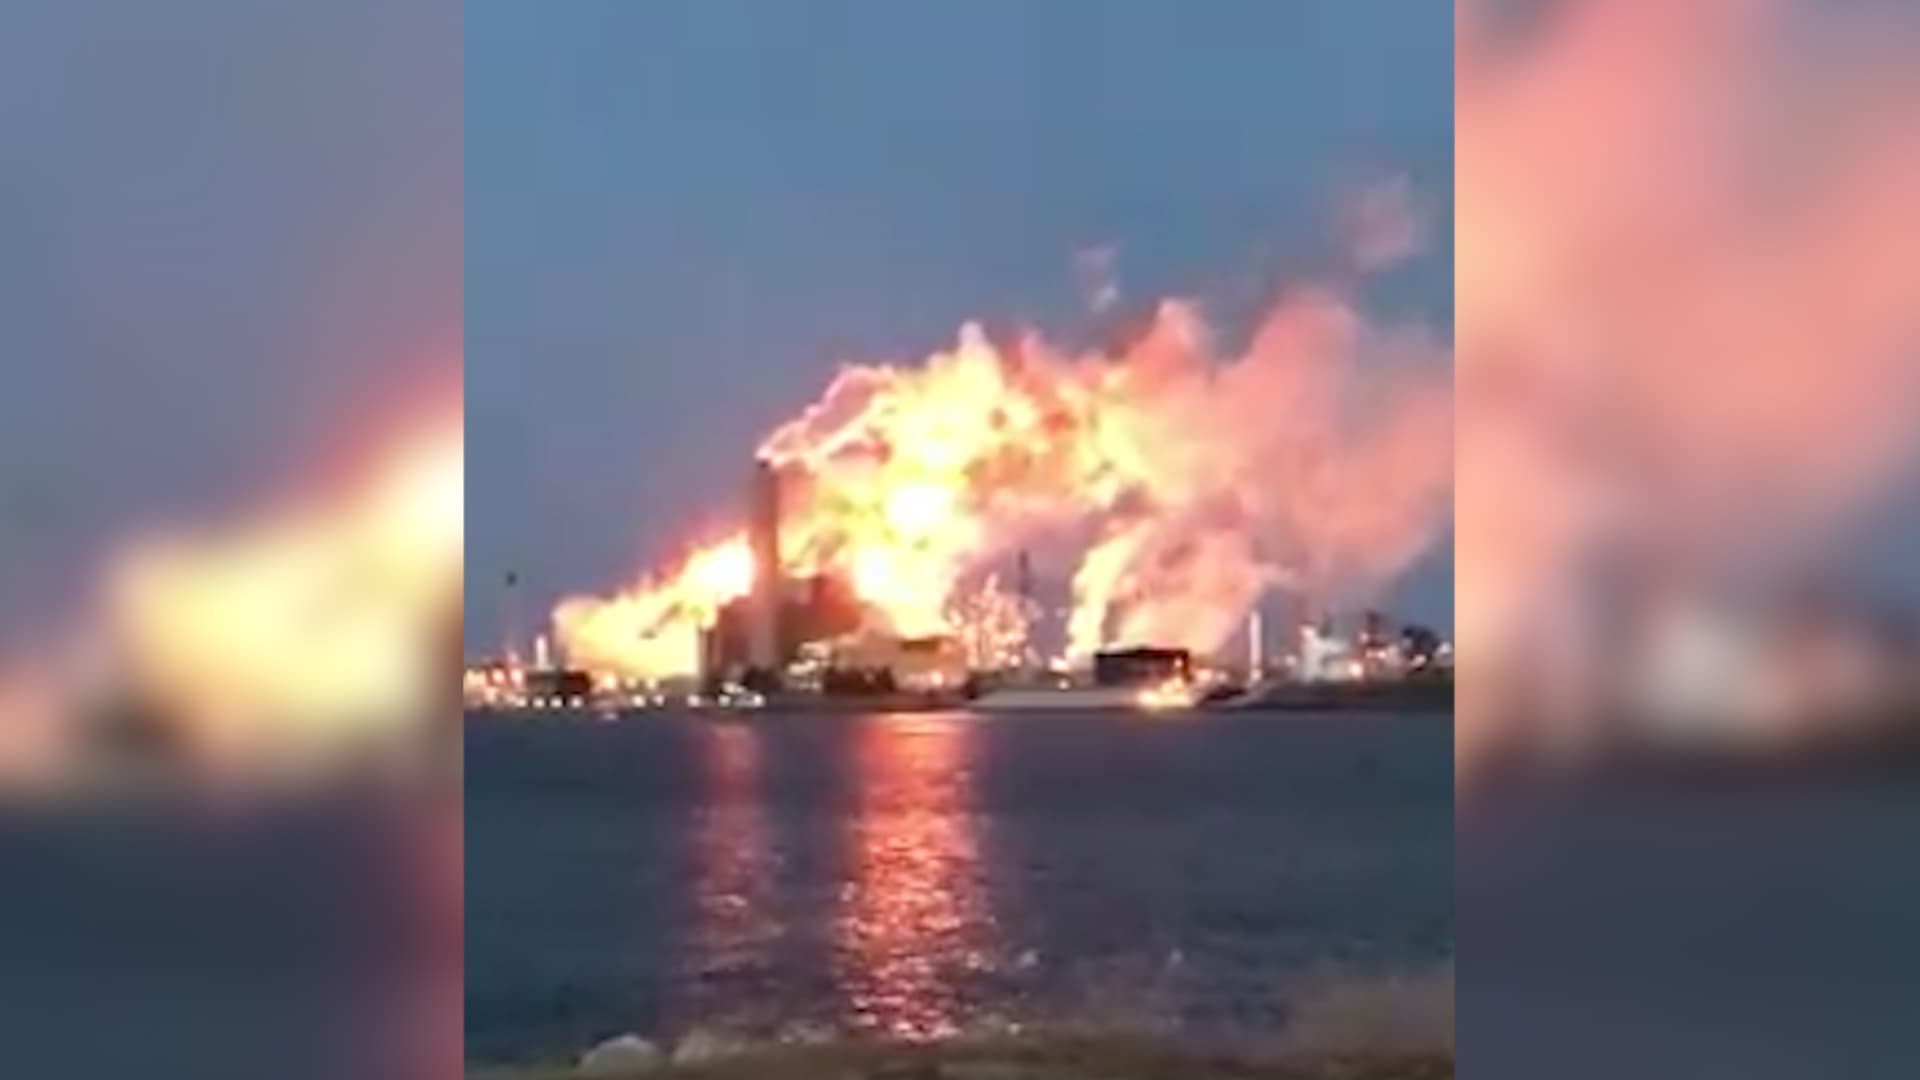 Imperial Oil Refinery Fire